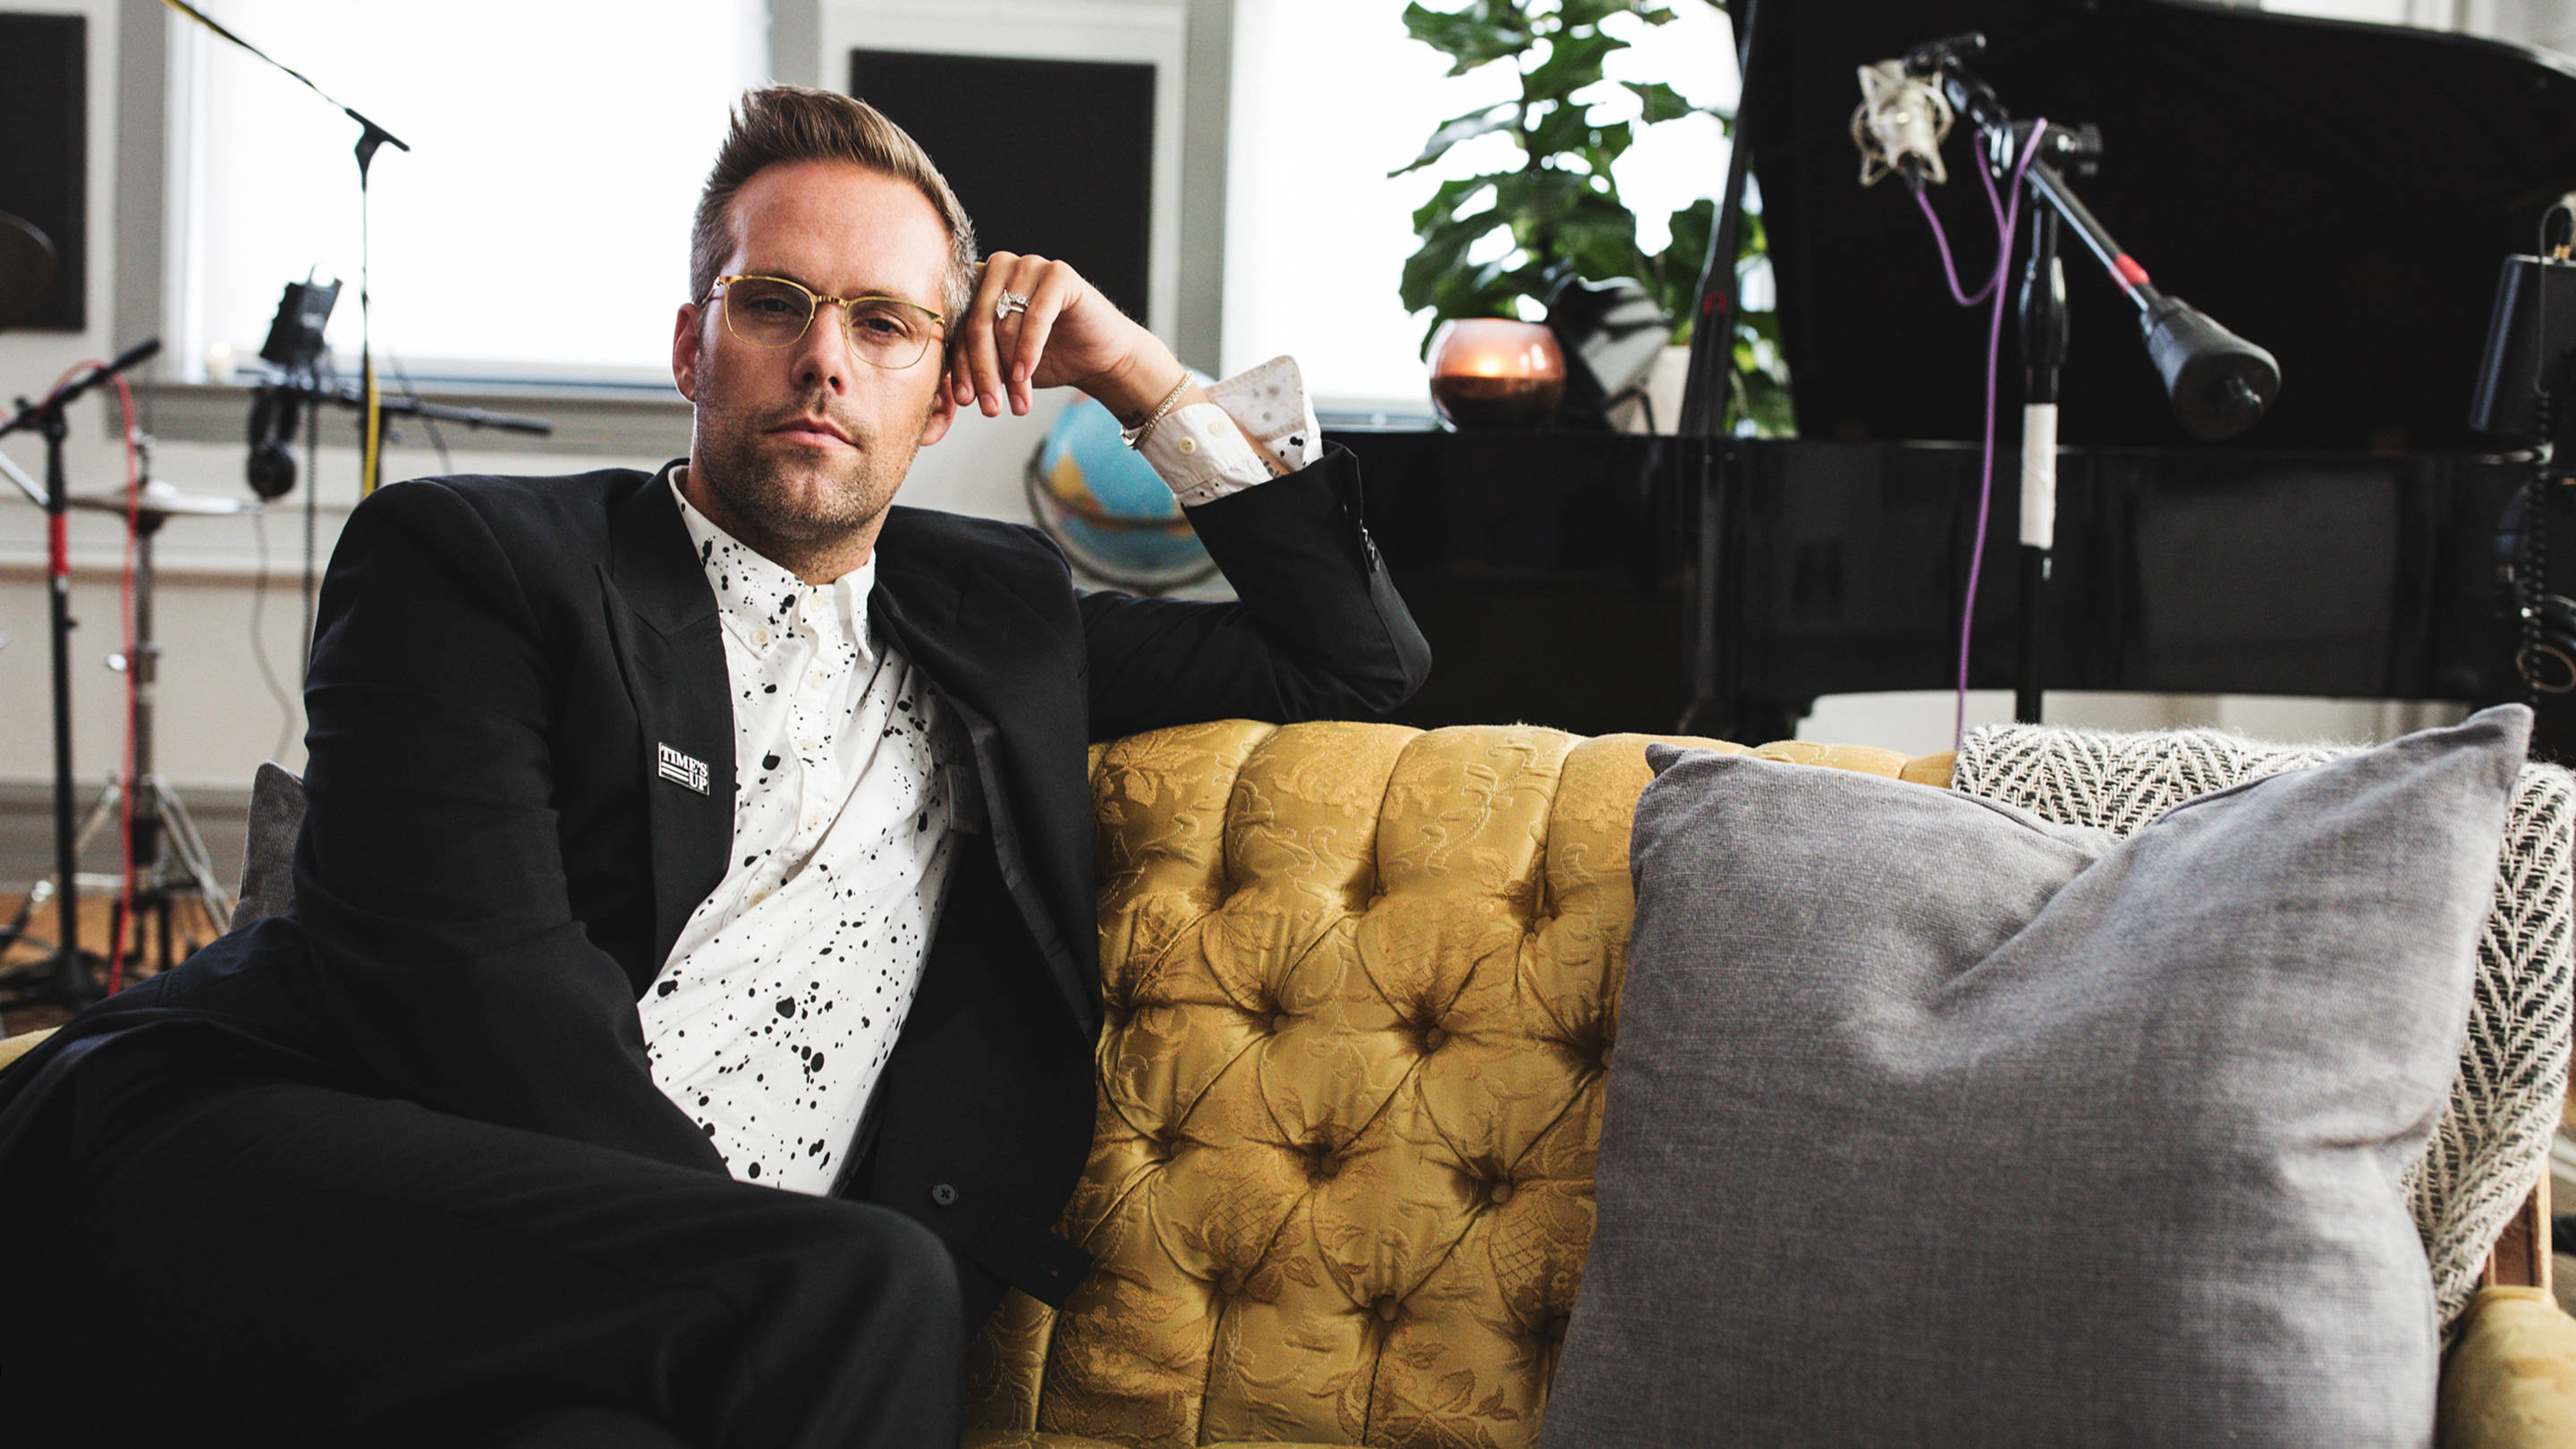 Justin Tranter Chicago Academy of the Arts by Playboy